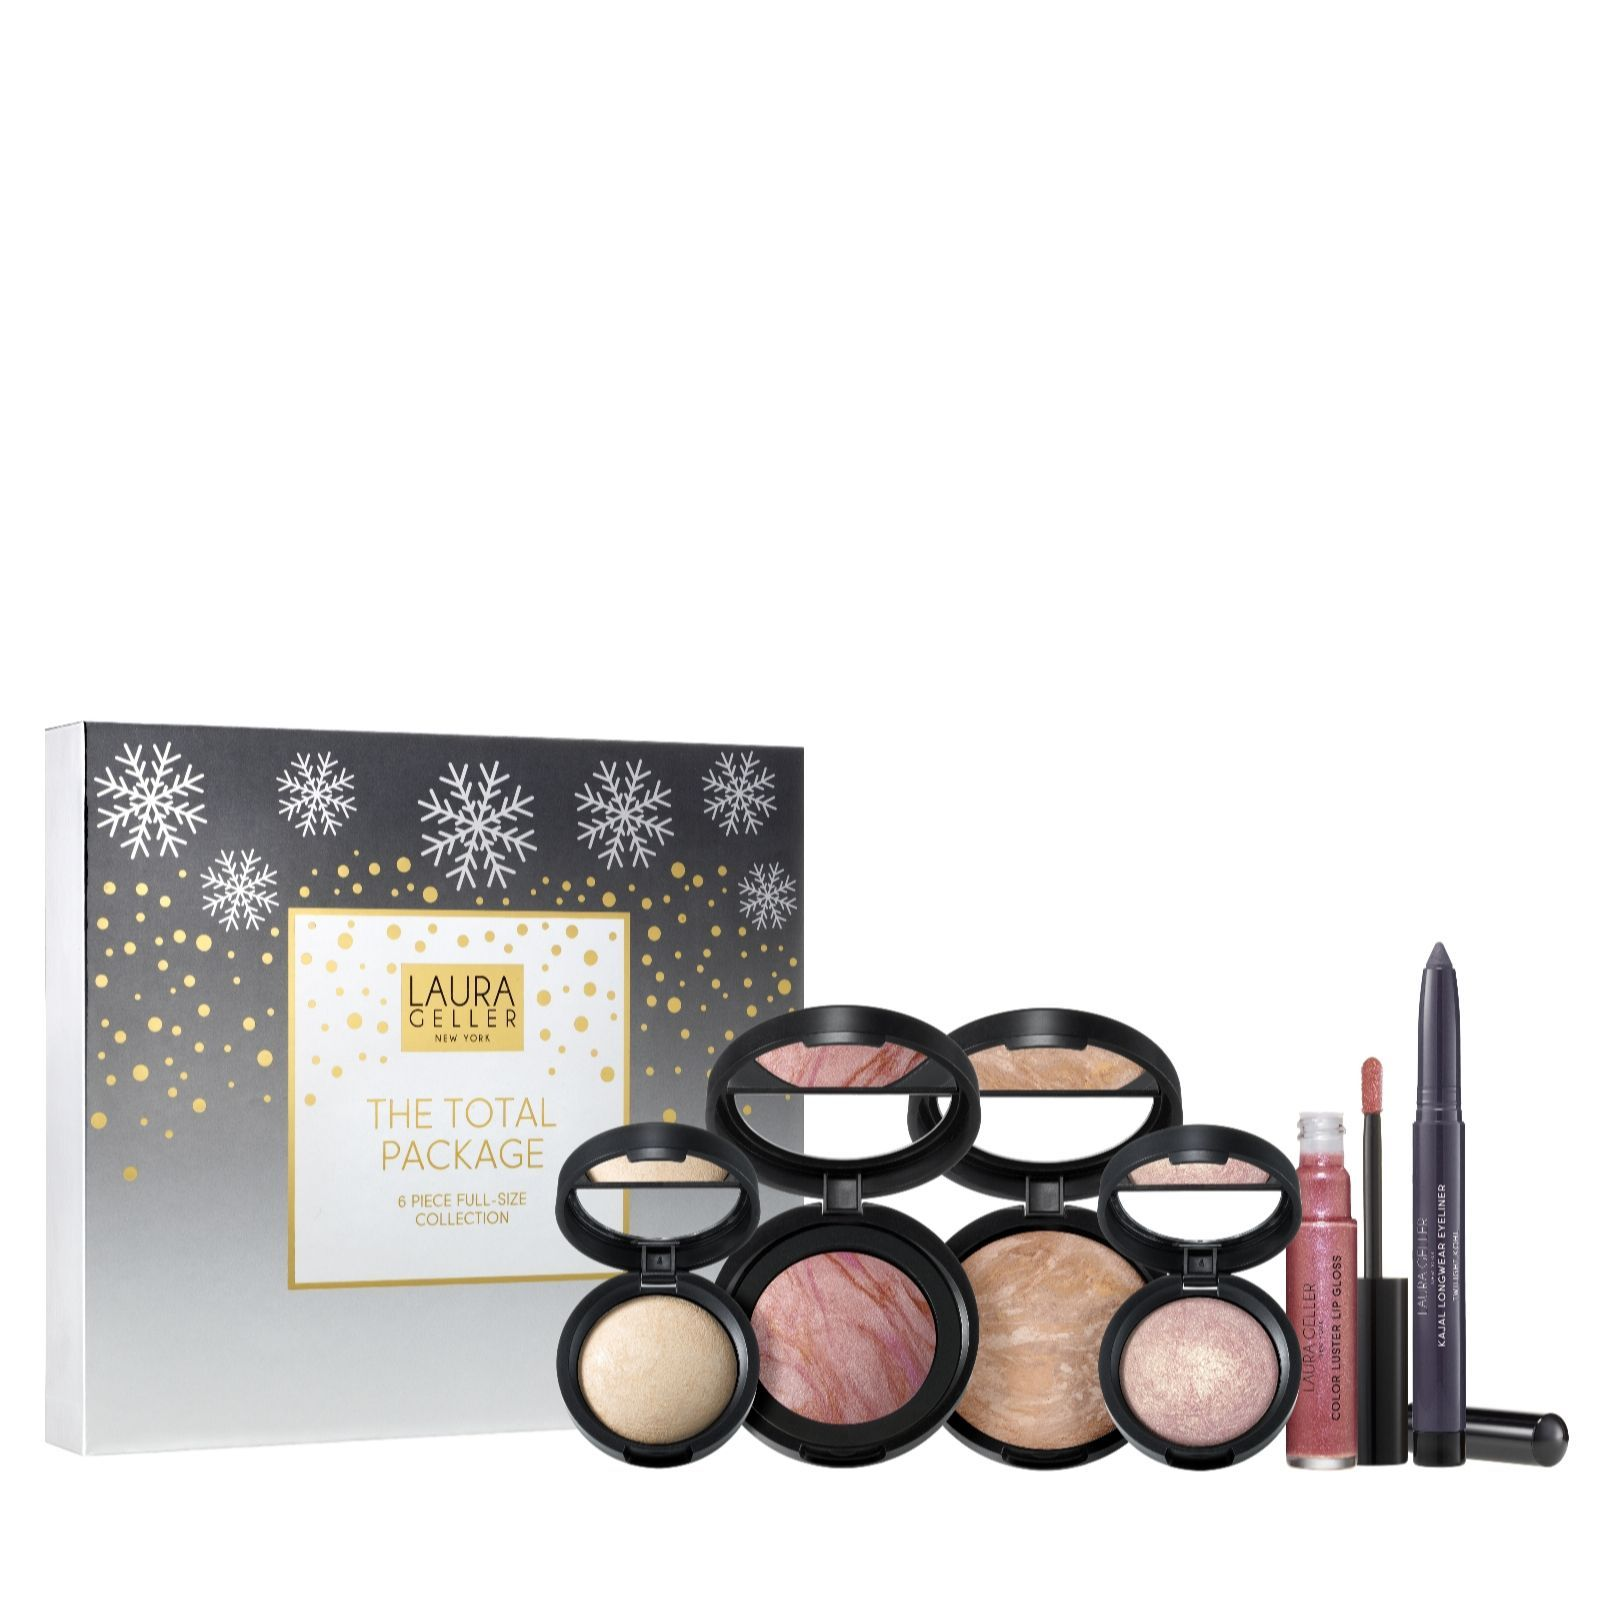 Laura Geller 6 Piece Holiday Make Up Collection Qvc Uk Laura